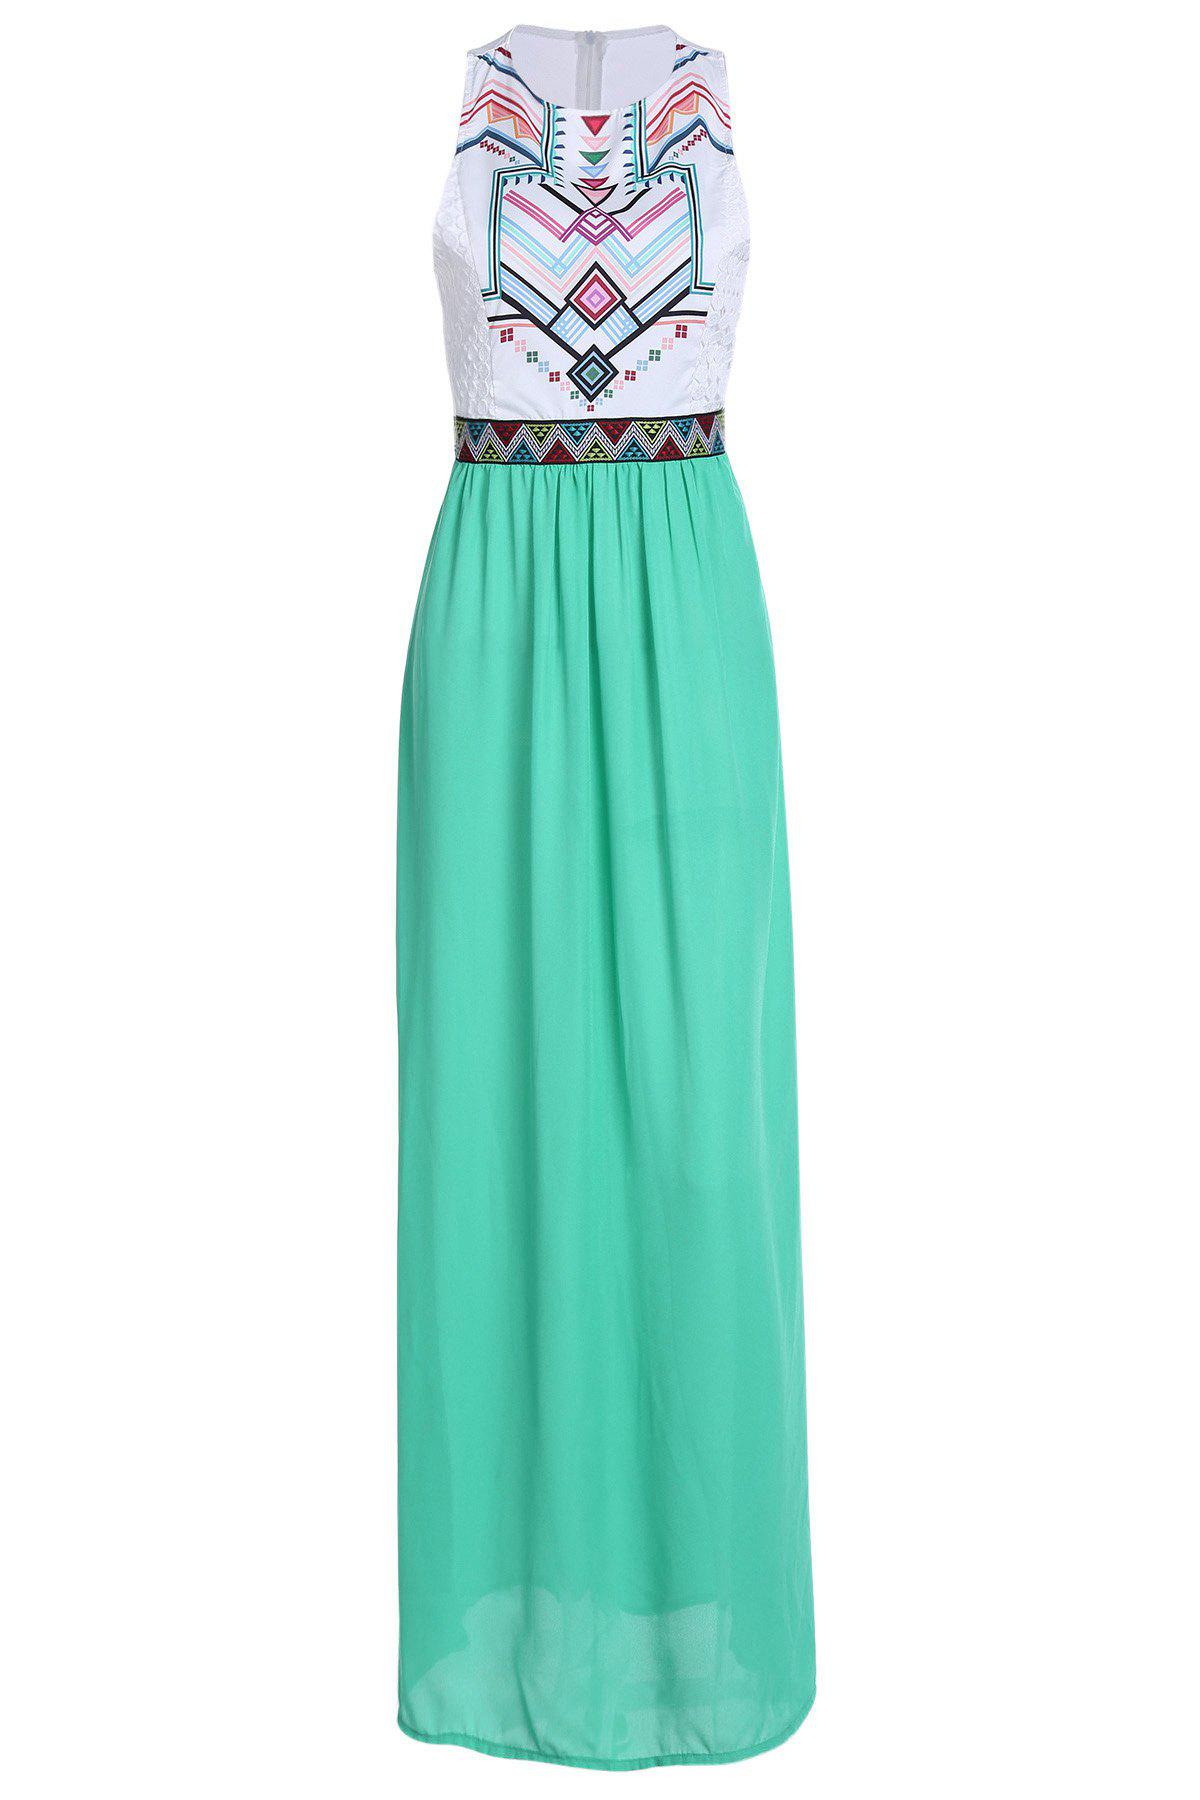 Fashionable Jewel Neck Geometric Print Splicing Sleeveless Maxi Dress For Women - WHITE S